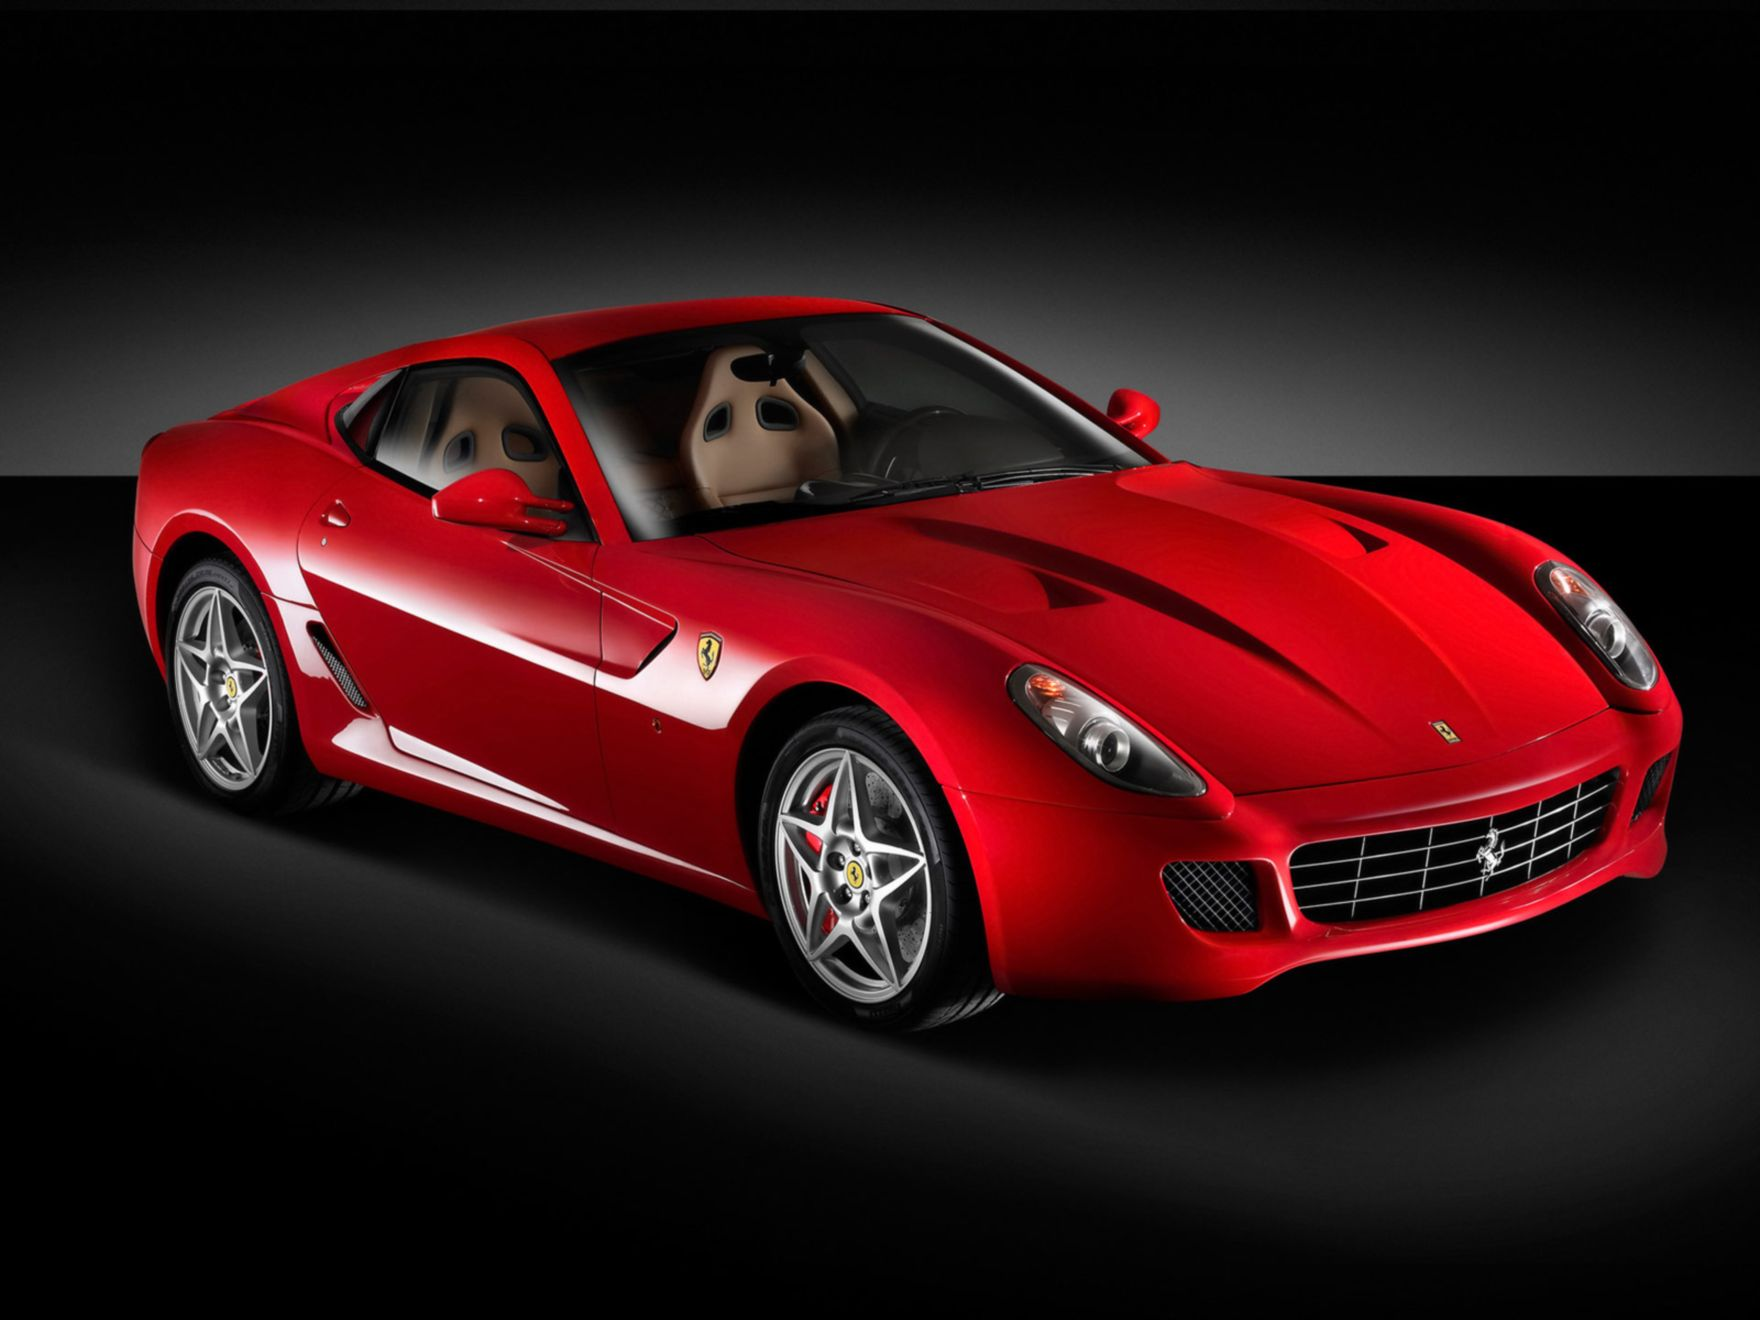 Download free HD Ferrari 599 Gtb Normal Wallpaper, image